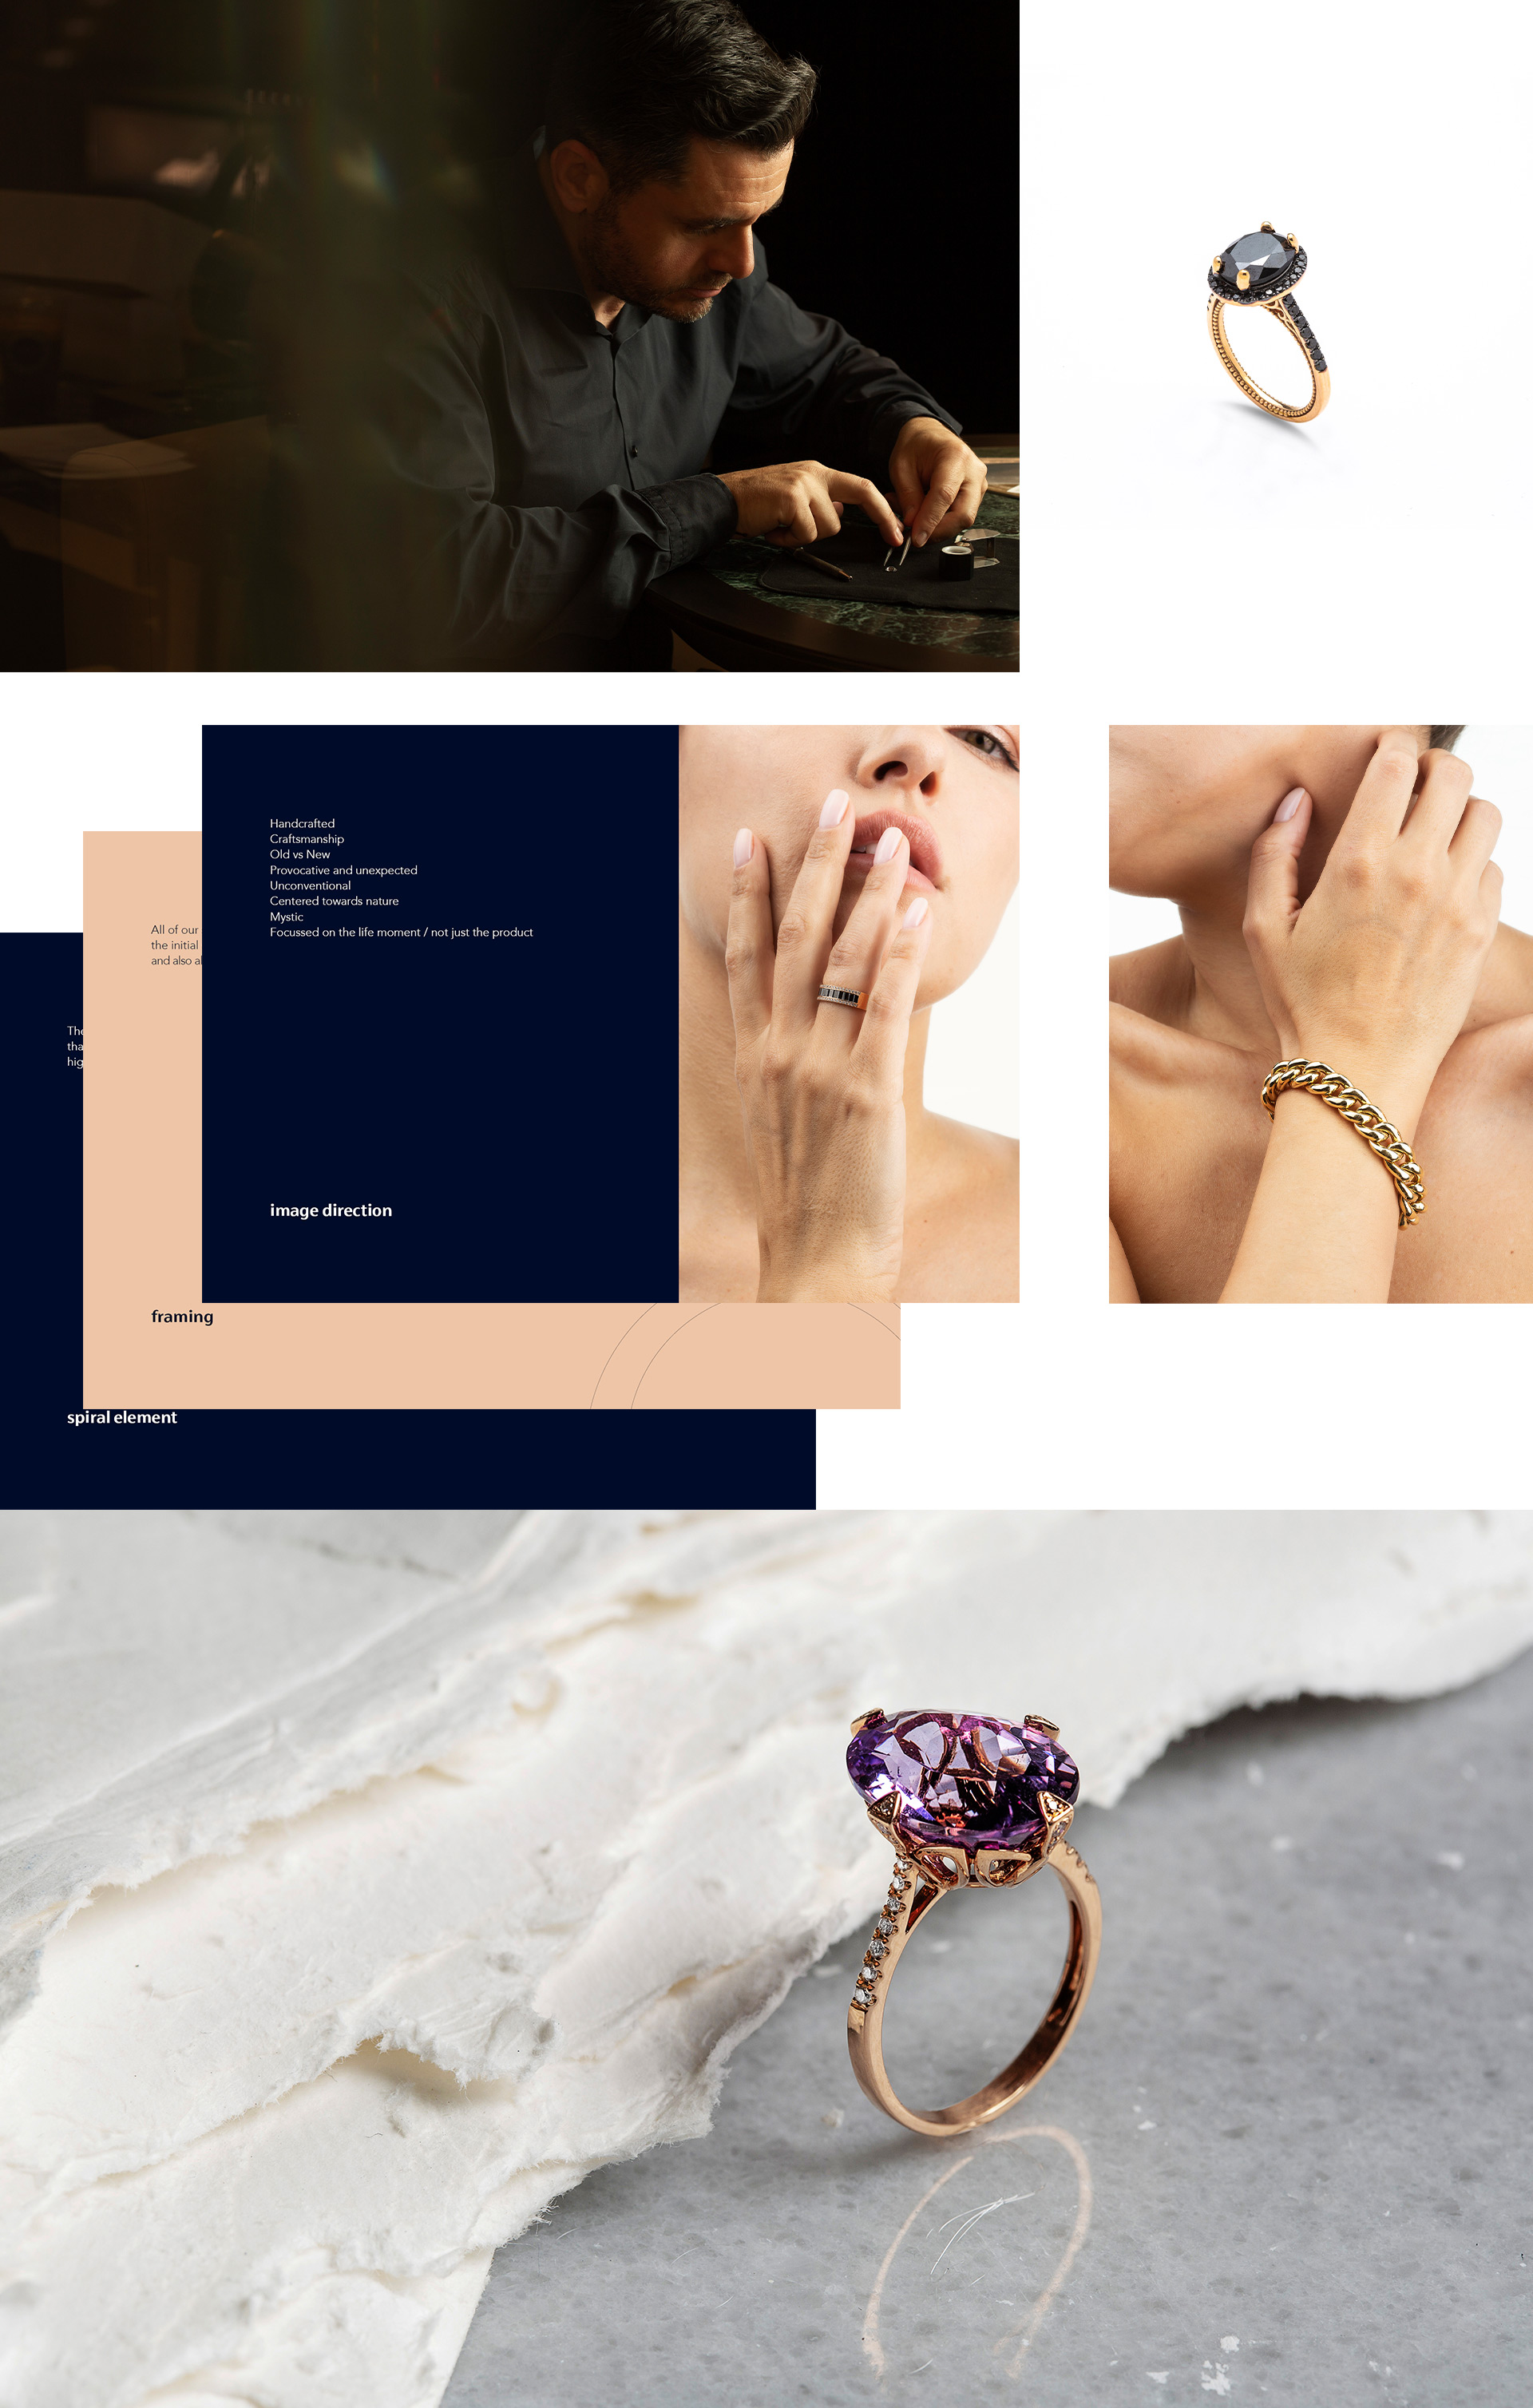 selection of images from brand manual